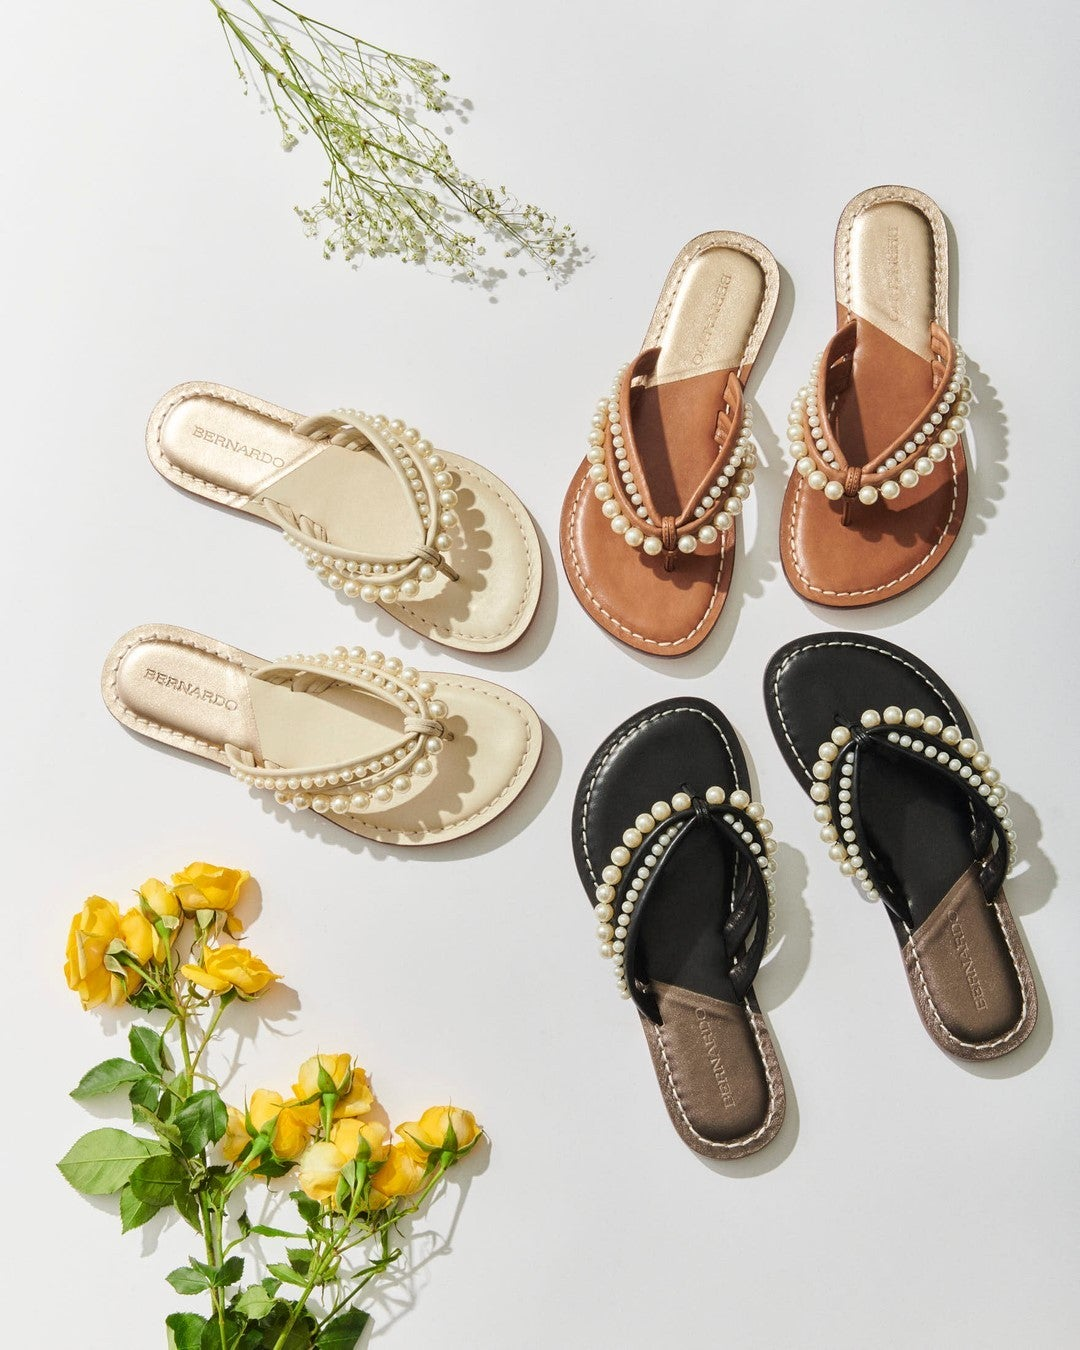 the pearl-encrusted flip flops in white, black, and brown